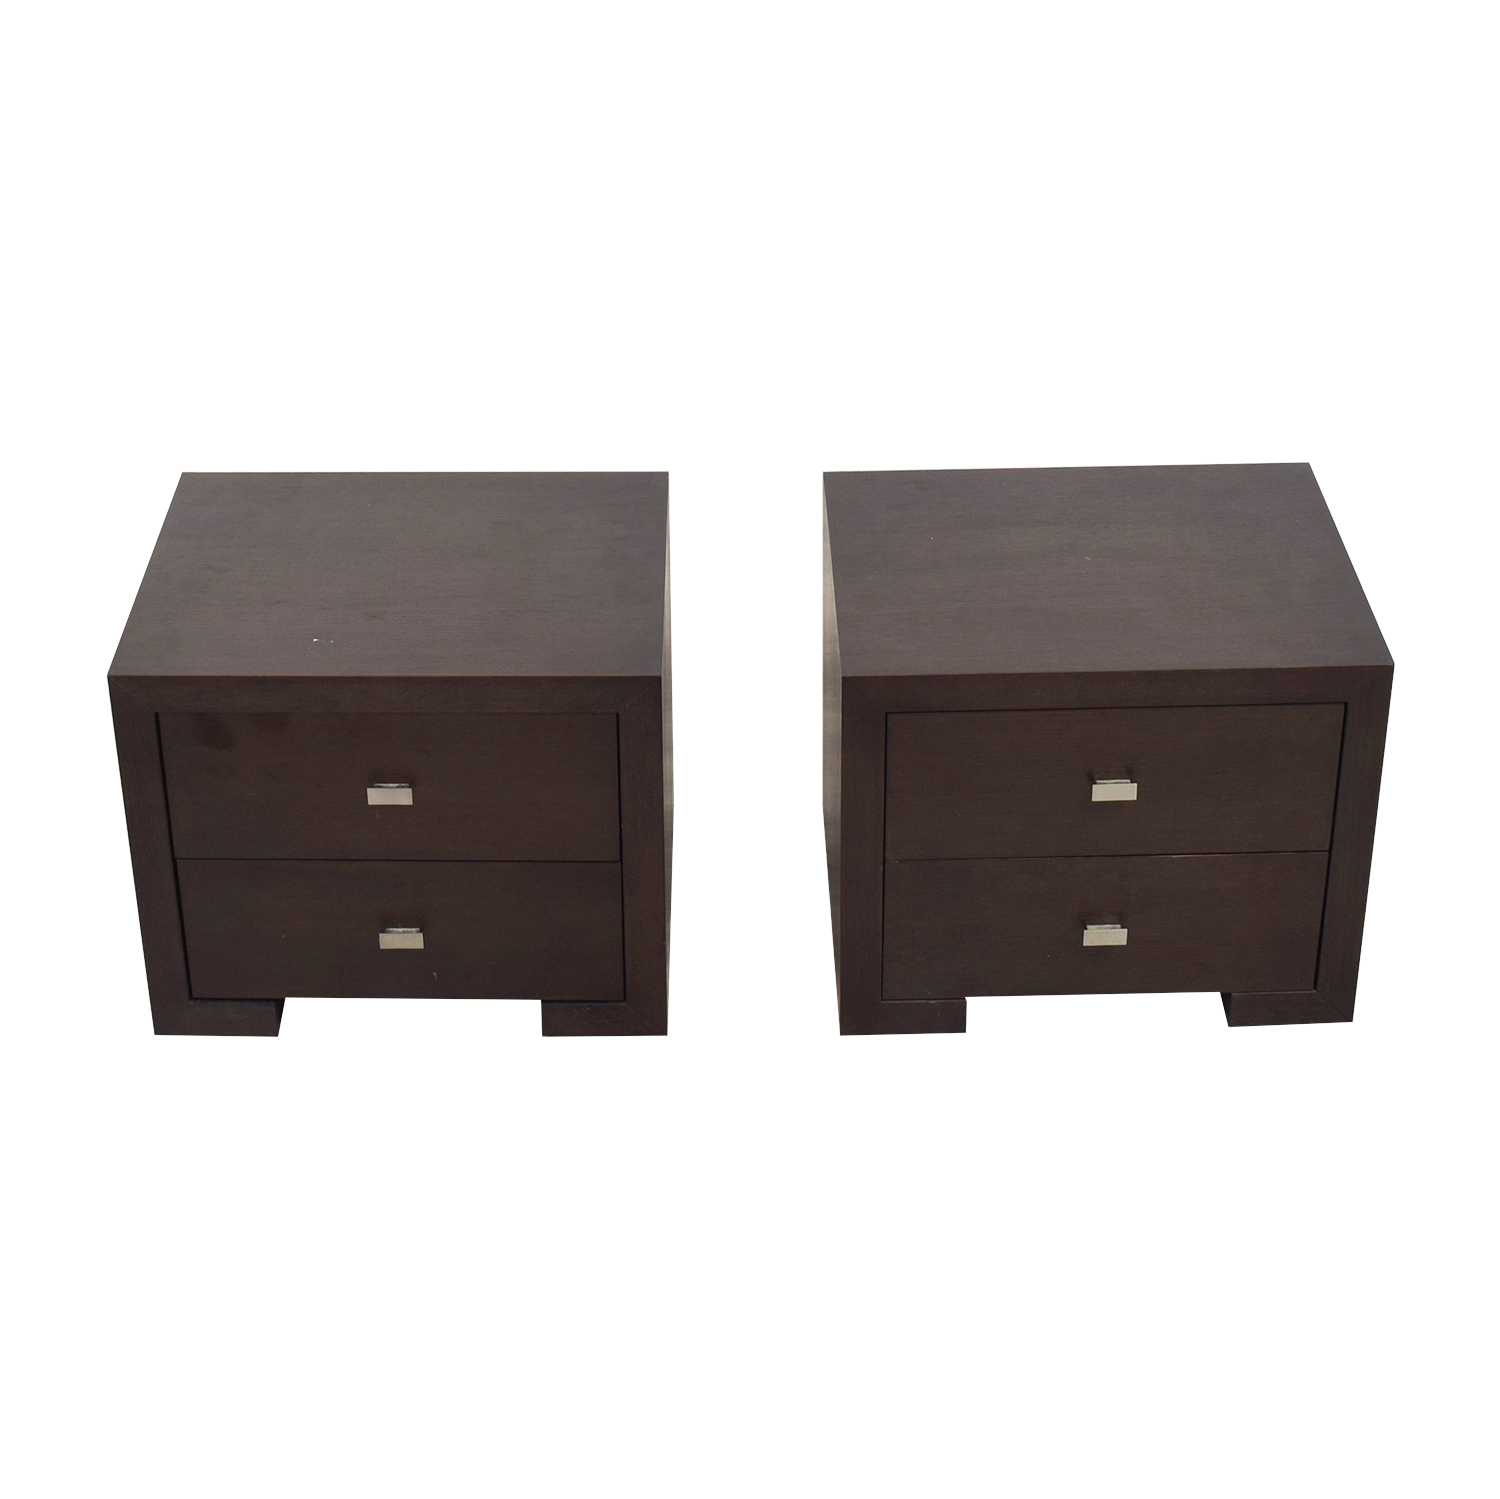 Two-Drawer Wood Nightstands price